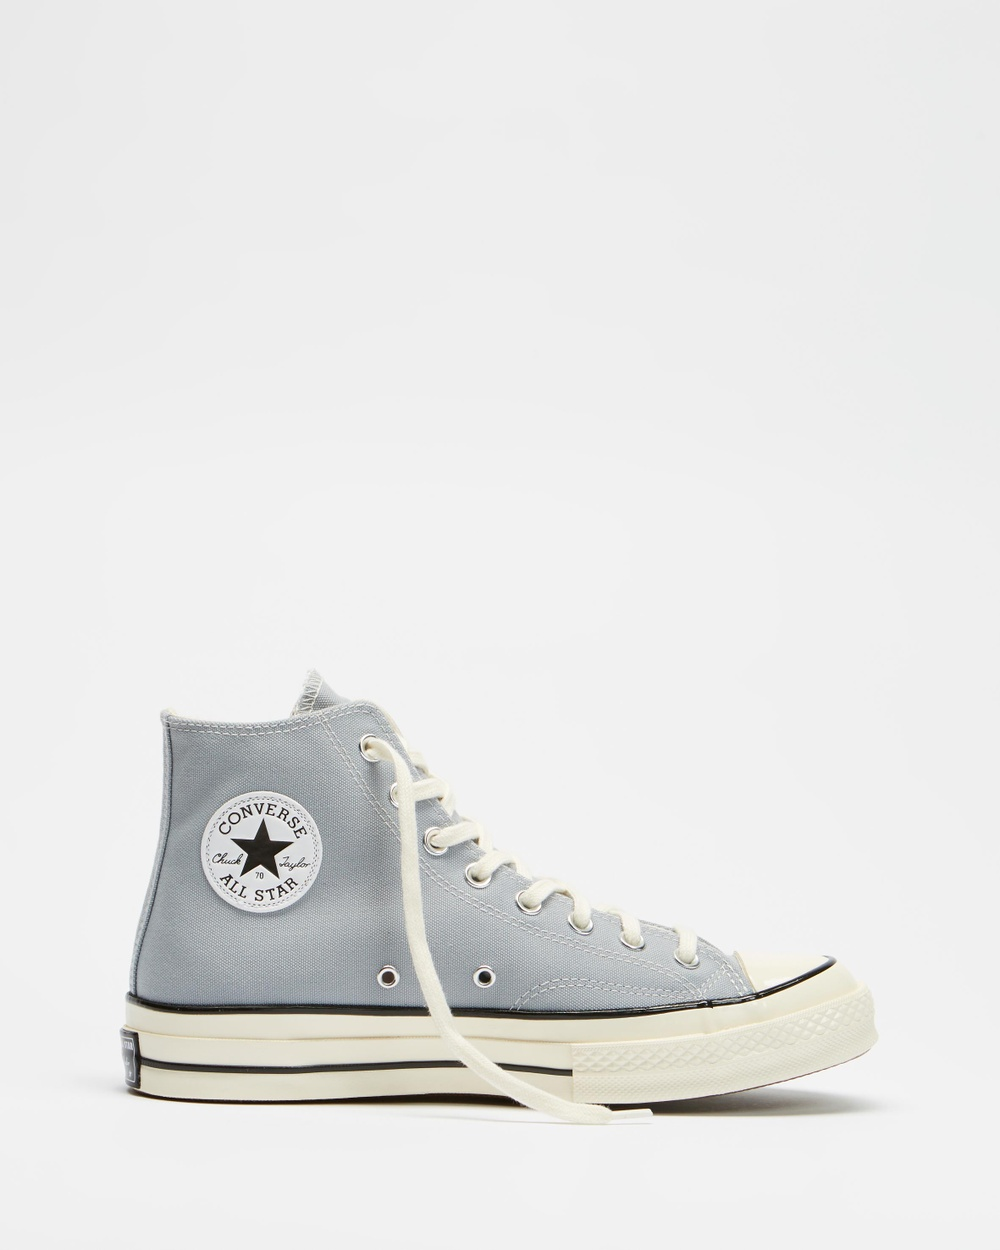 Converse Chuck Taylor All Star 70 High Tops Unisex Sneakers Wolf Grey & Black